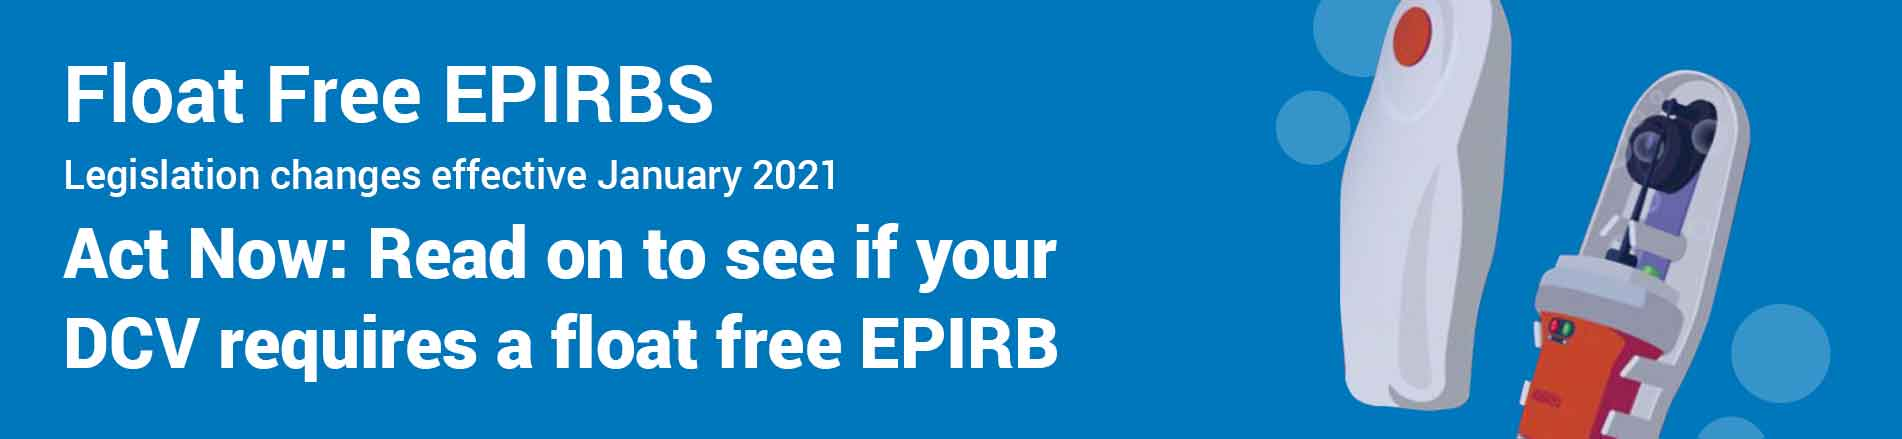 epirb news